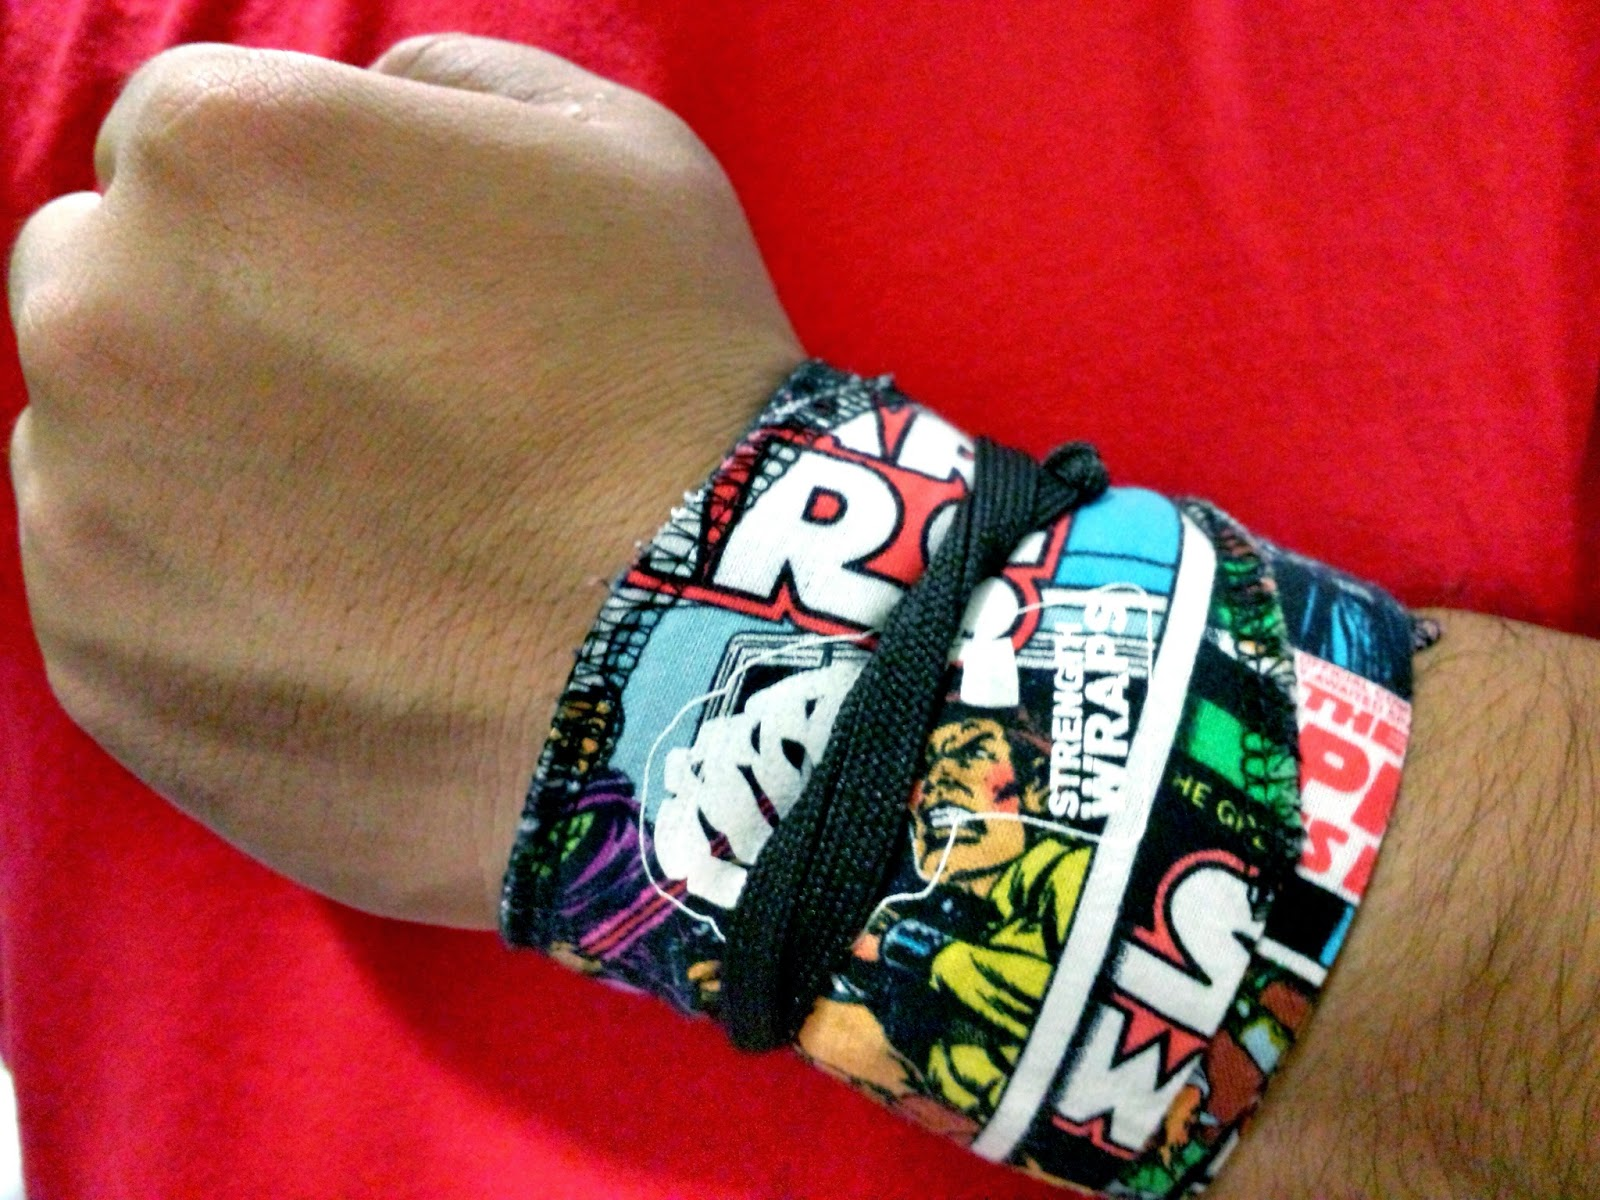 These wrist wraps are great for added support during those push-ups, overhead squat and push press. Best of all, there are ton of nerdy patterns available on Etsy to find the one that suits you best.